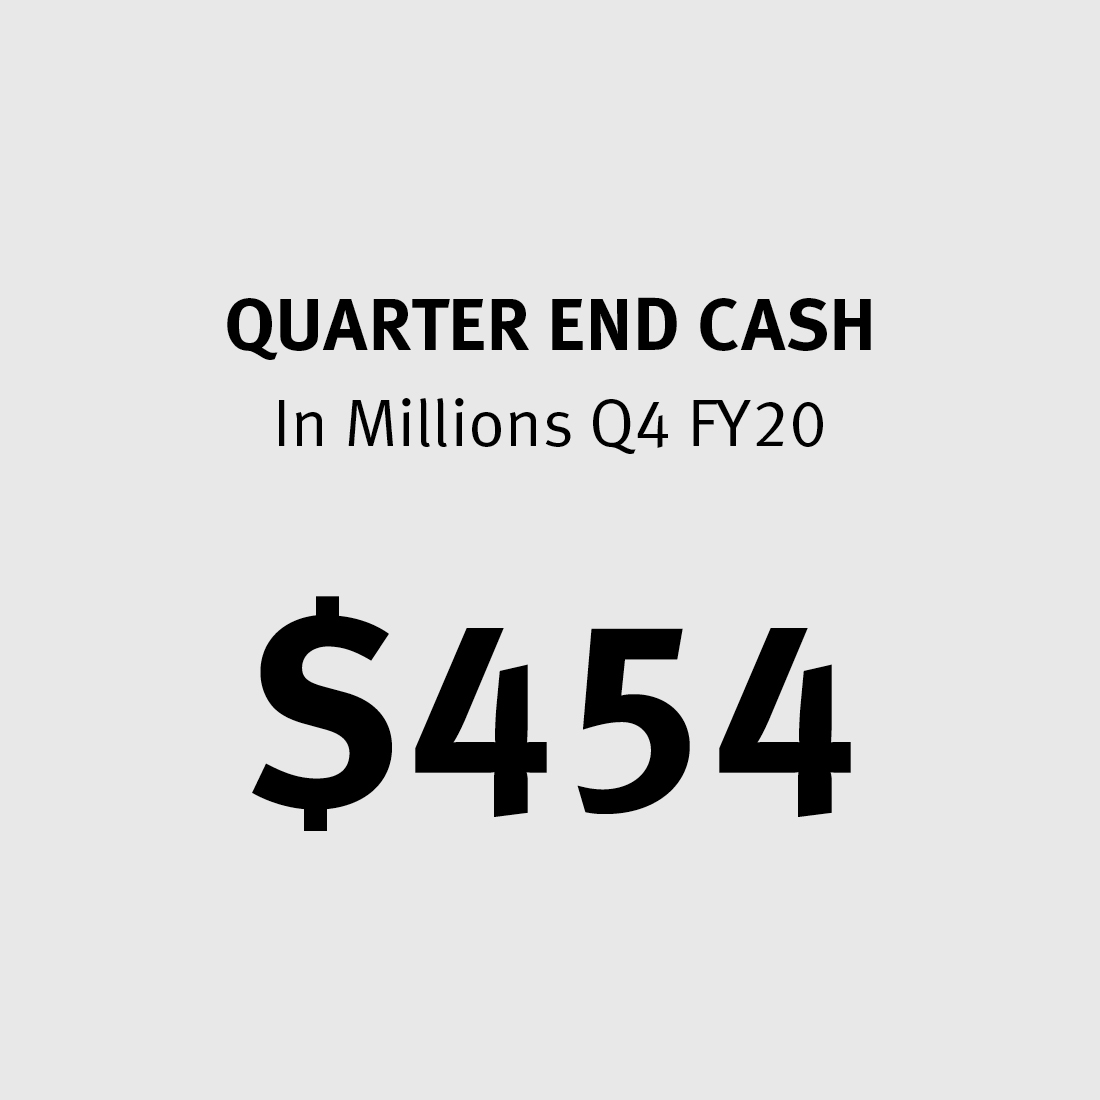 Quarter End Cash $454M